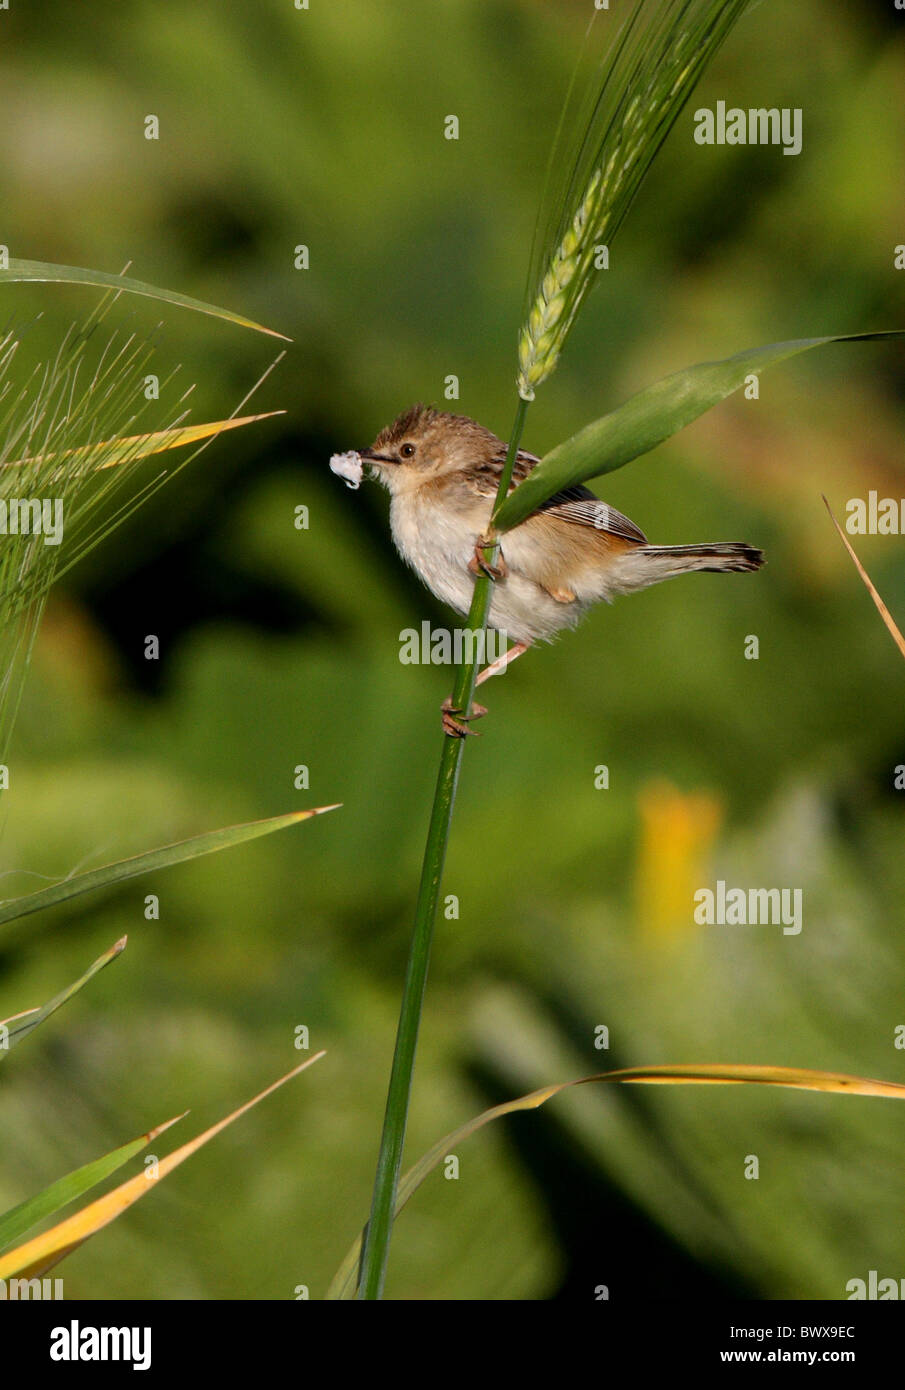 Fan-tailed Warbler (Cisticola juncidis cisticola) adult, with nesting material in beak, perched on stem, Morocco, - Stock Image